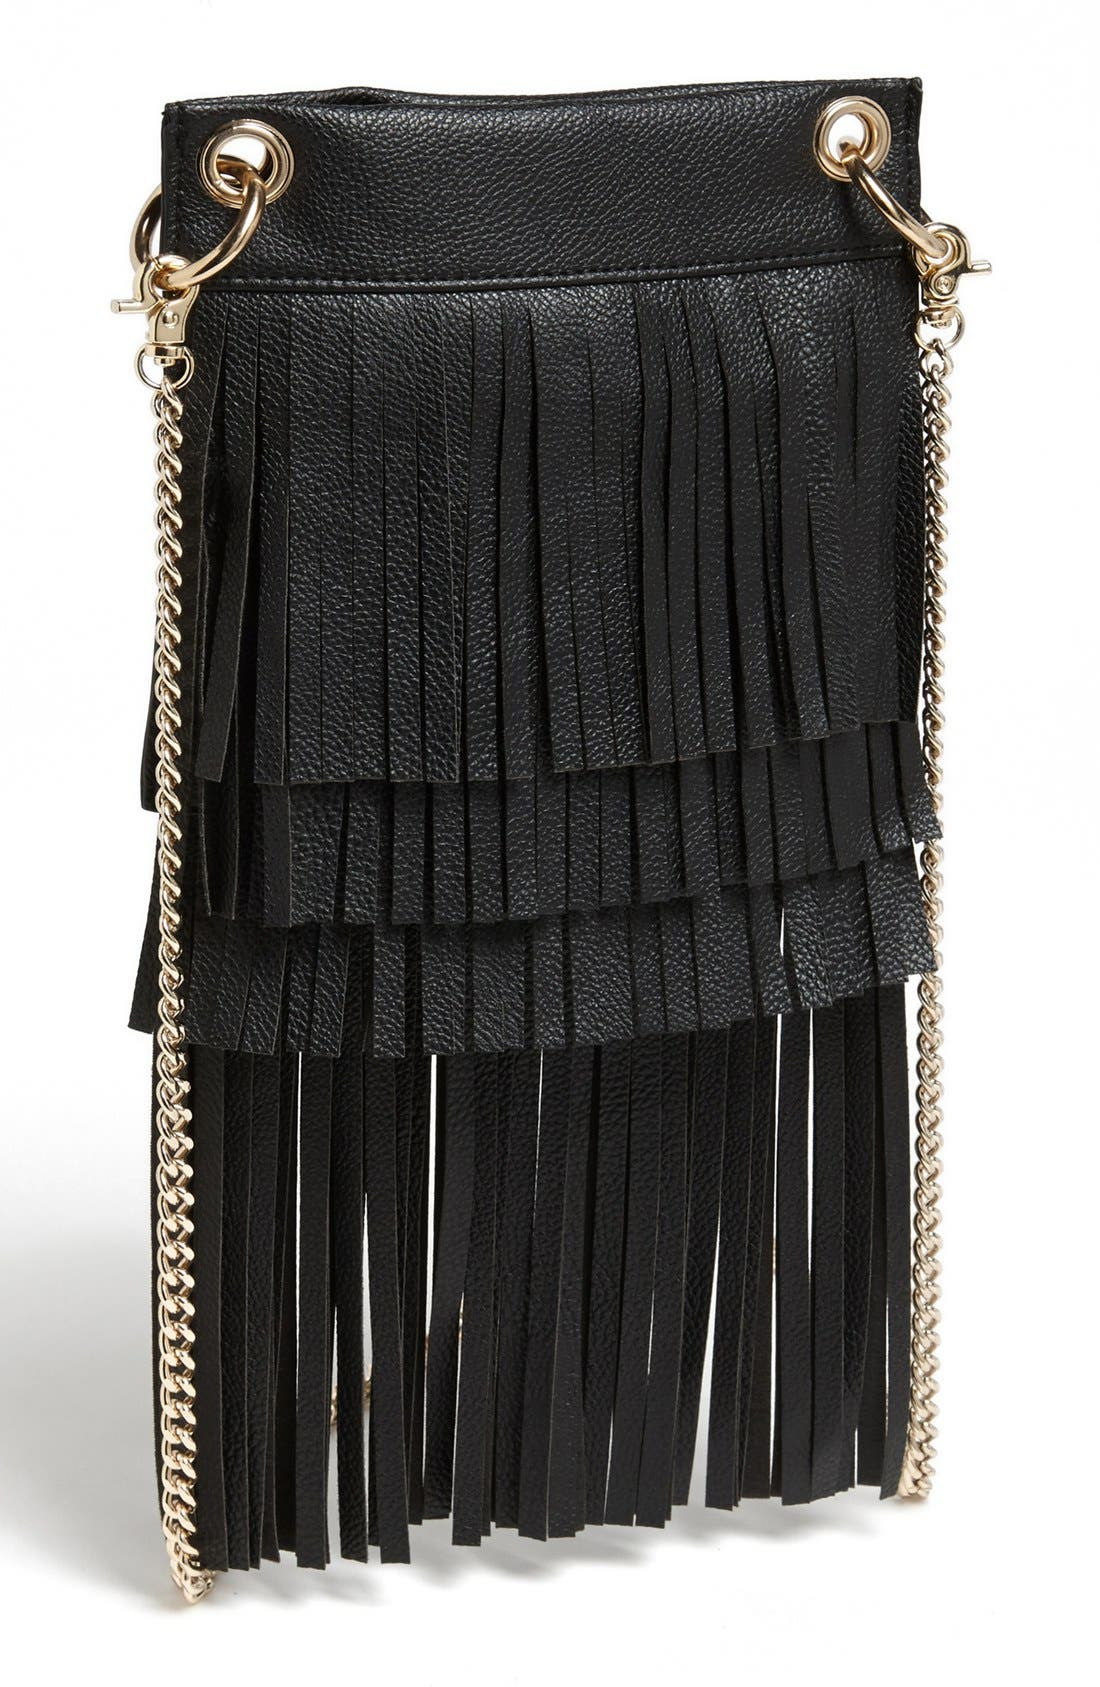 Alternate Image 1 Selected - BP. Layered Fringe Crossbody Bag (Juniors)